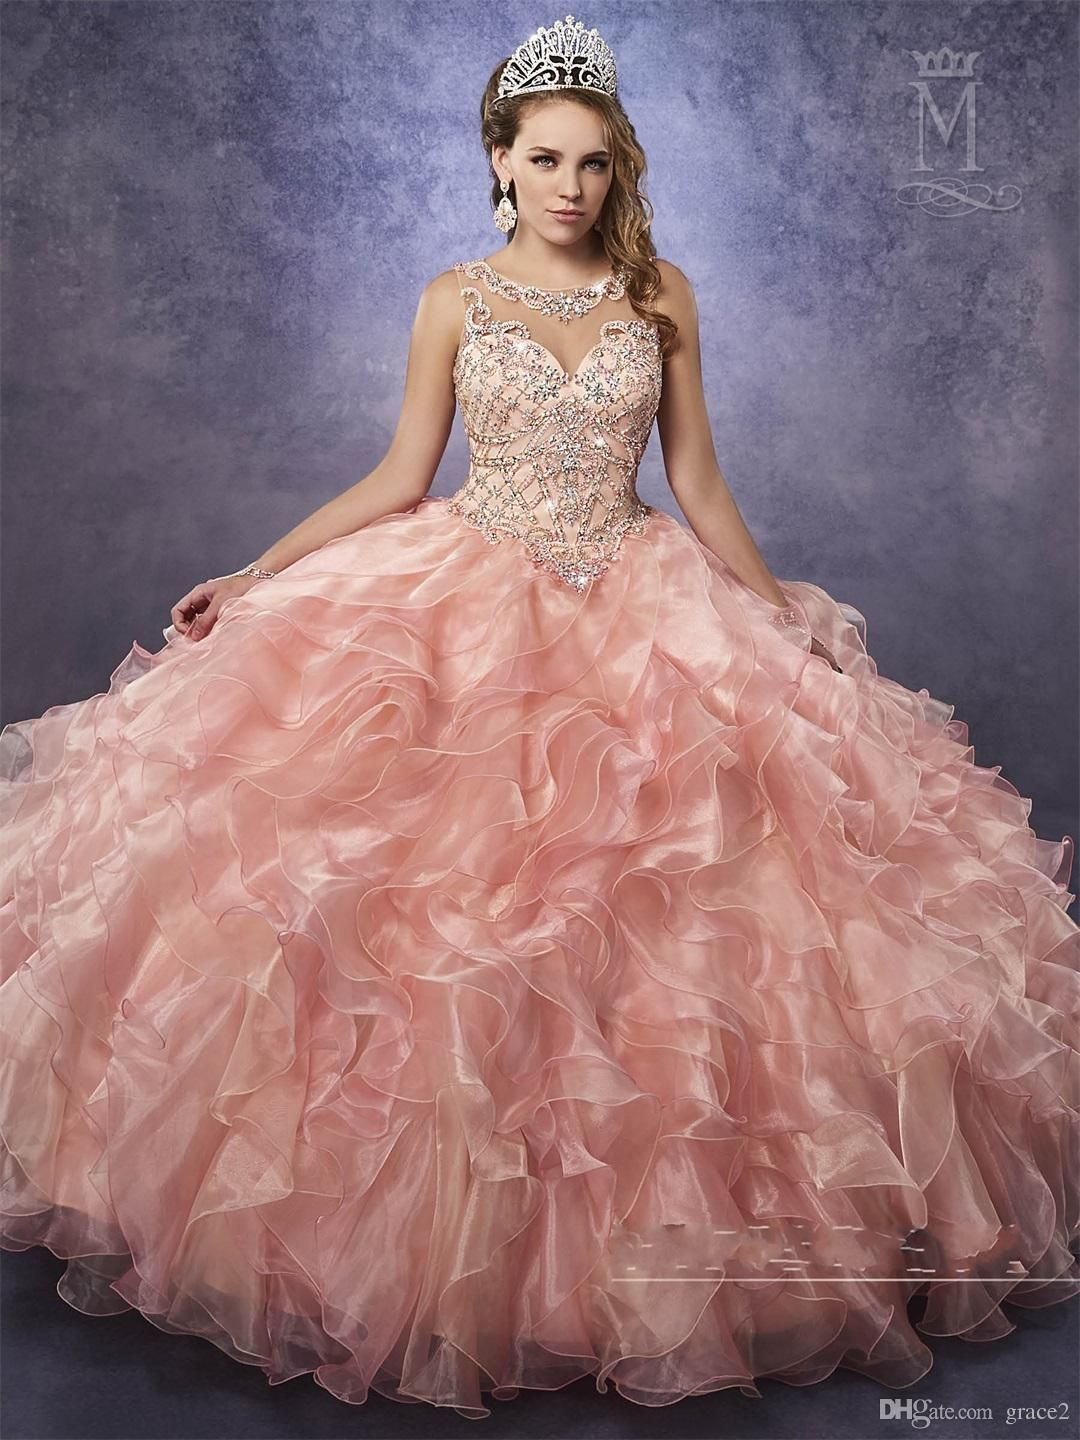 db945e6c89e0f Cheap Quinceanera Dresses 2017 Mary's Princess with Illusion Neck And  Cascading Ruffles Organza Skirt Beautiful Peach Vestido 15 Anos Vestidos De  15 Anos ...